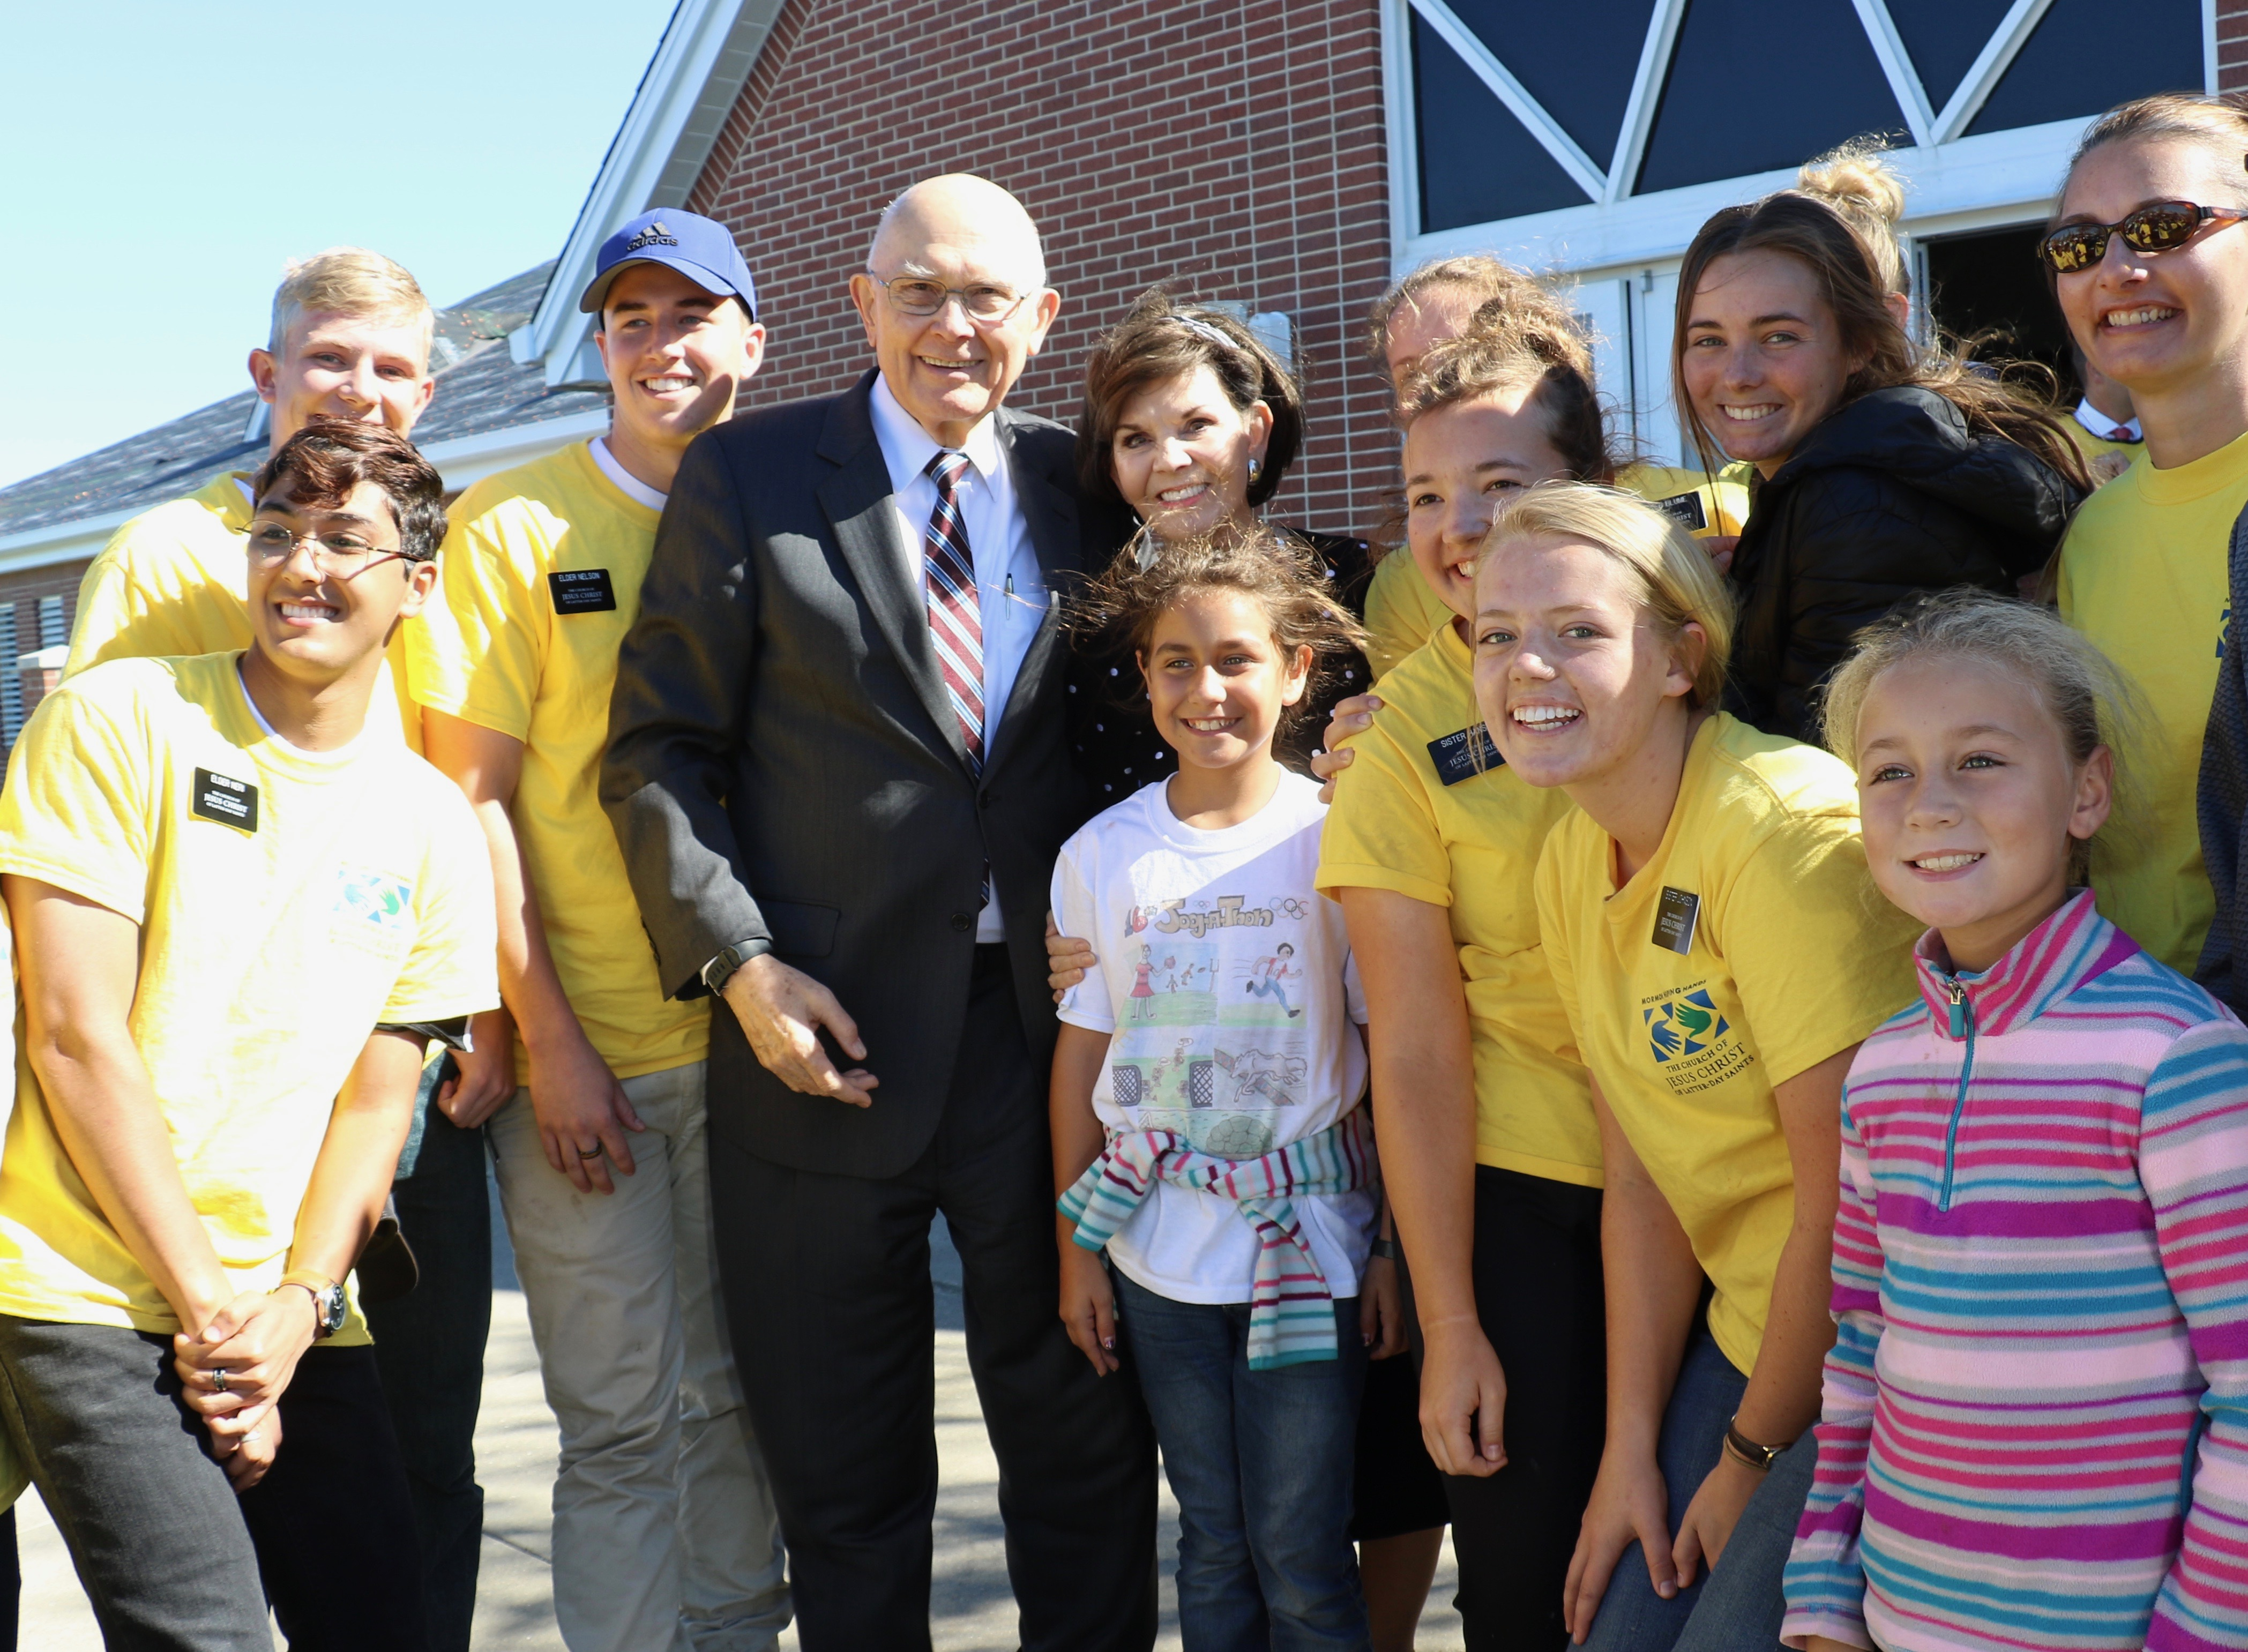 President Dallin H. Oaks of The Church of Jesus Christ of Latter-day Saints and Sister Kristen Oaks enjoy posing for picture with missionaries and youth outside the Callaway Ward Meetinghouse in Florida.